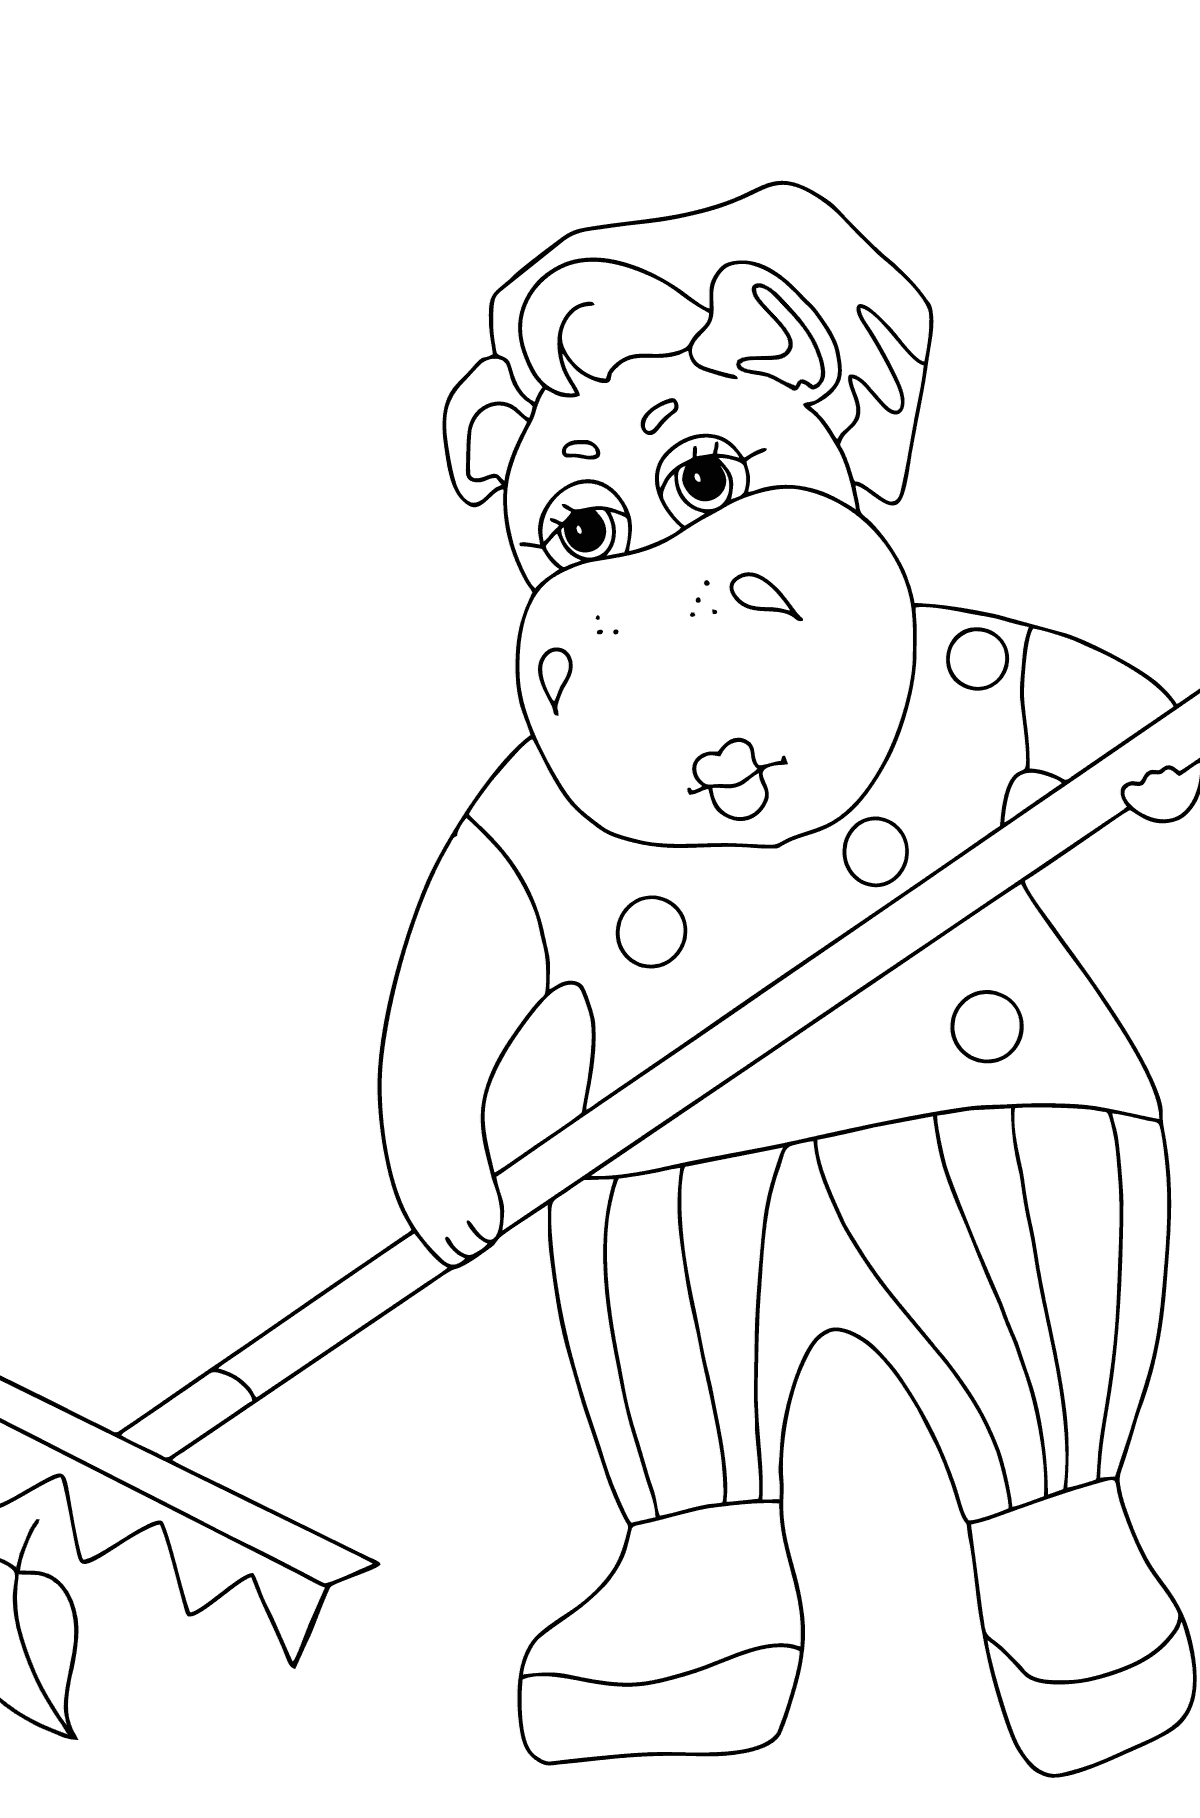 Coloring Page - A Hippo is Collecting Autumn Leaves for Children